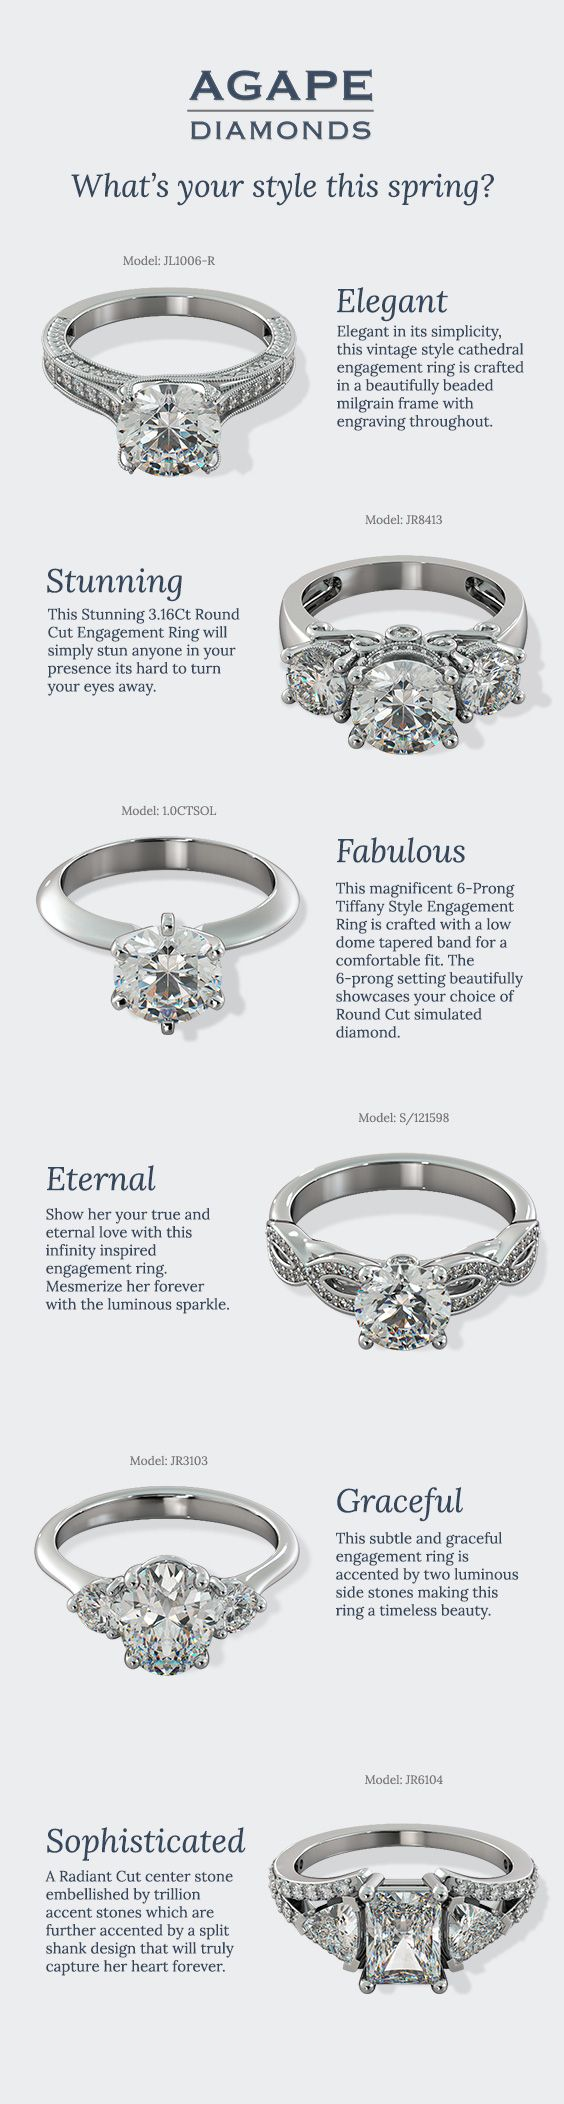 2016 Spring Trending Engagement Ring Styles. What's your style?